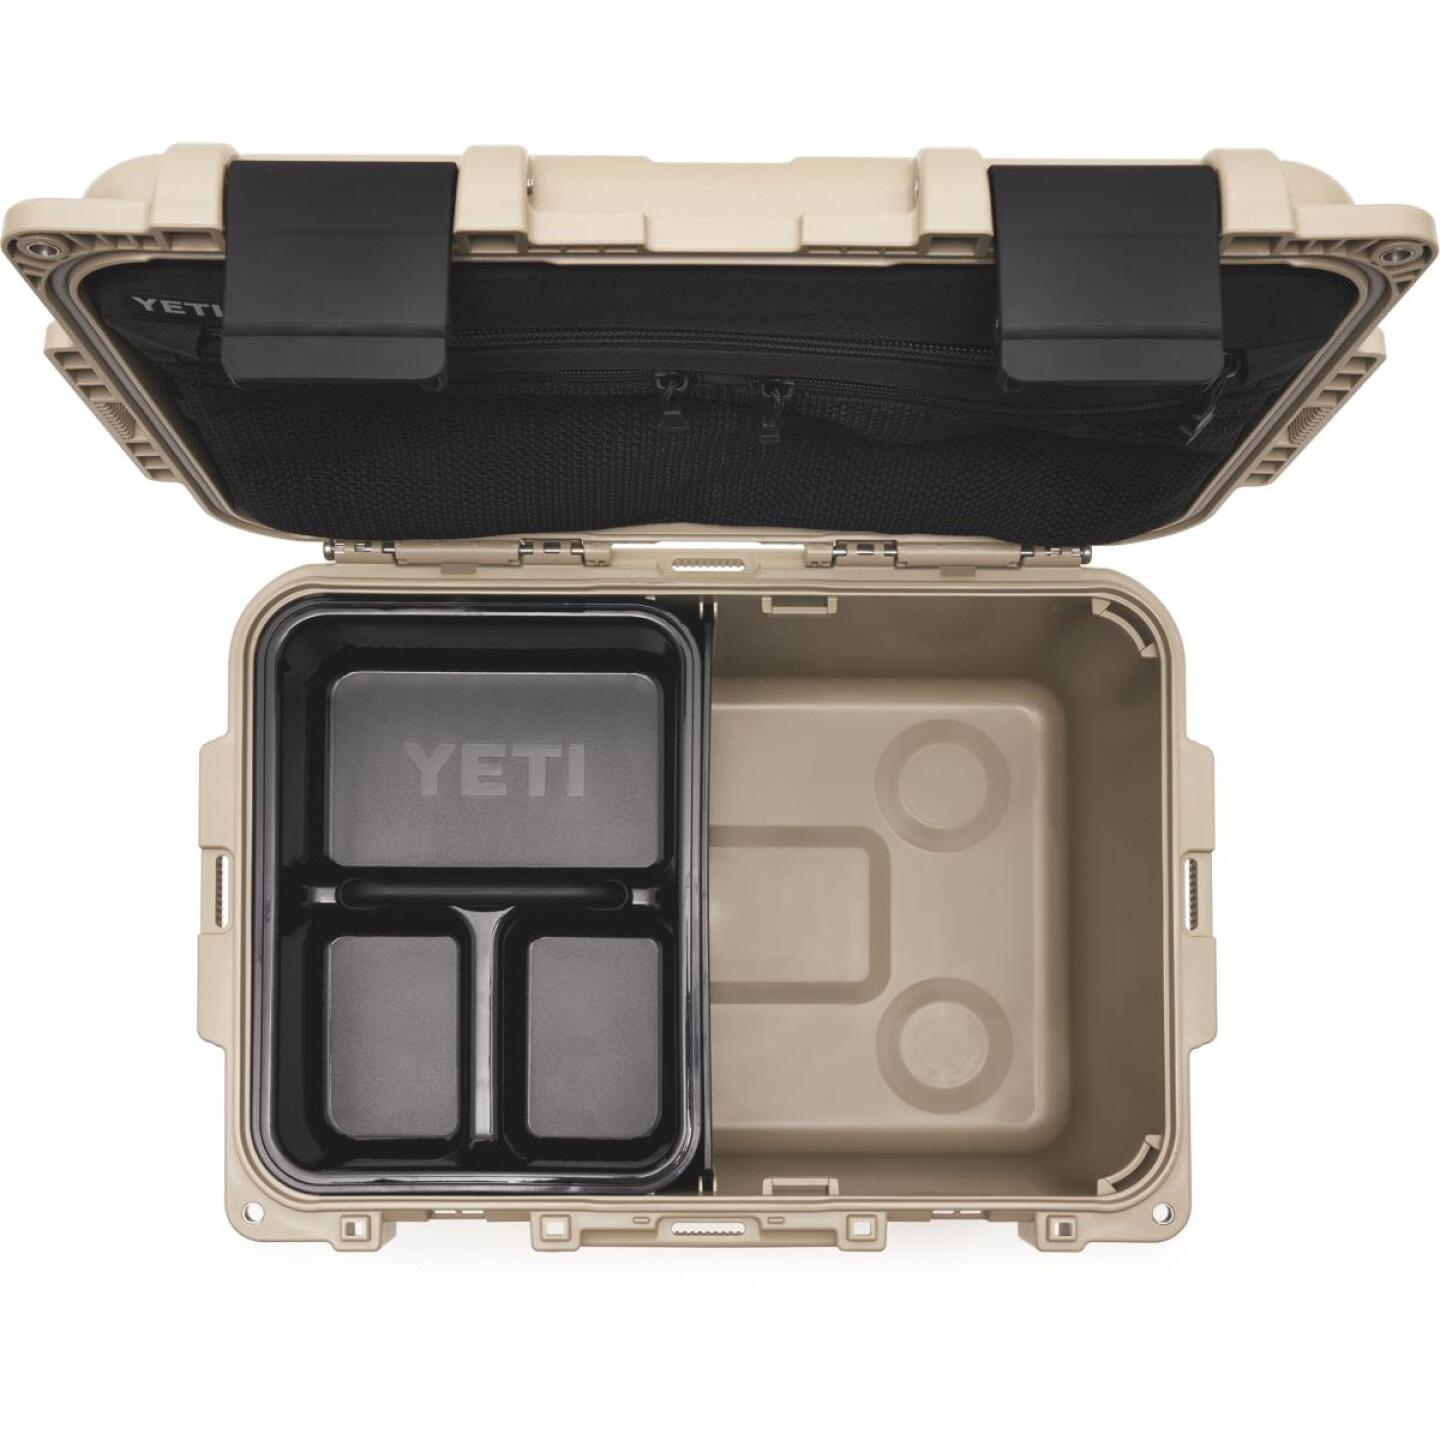 Yeti LoadOut GoBox 30 14.7 In. W. x 11.19 In. H. x 20.58 In. L. Tan Tote Image 3